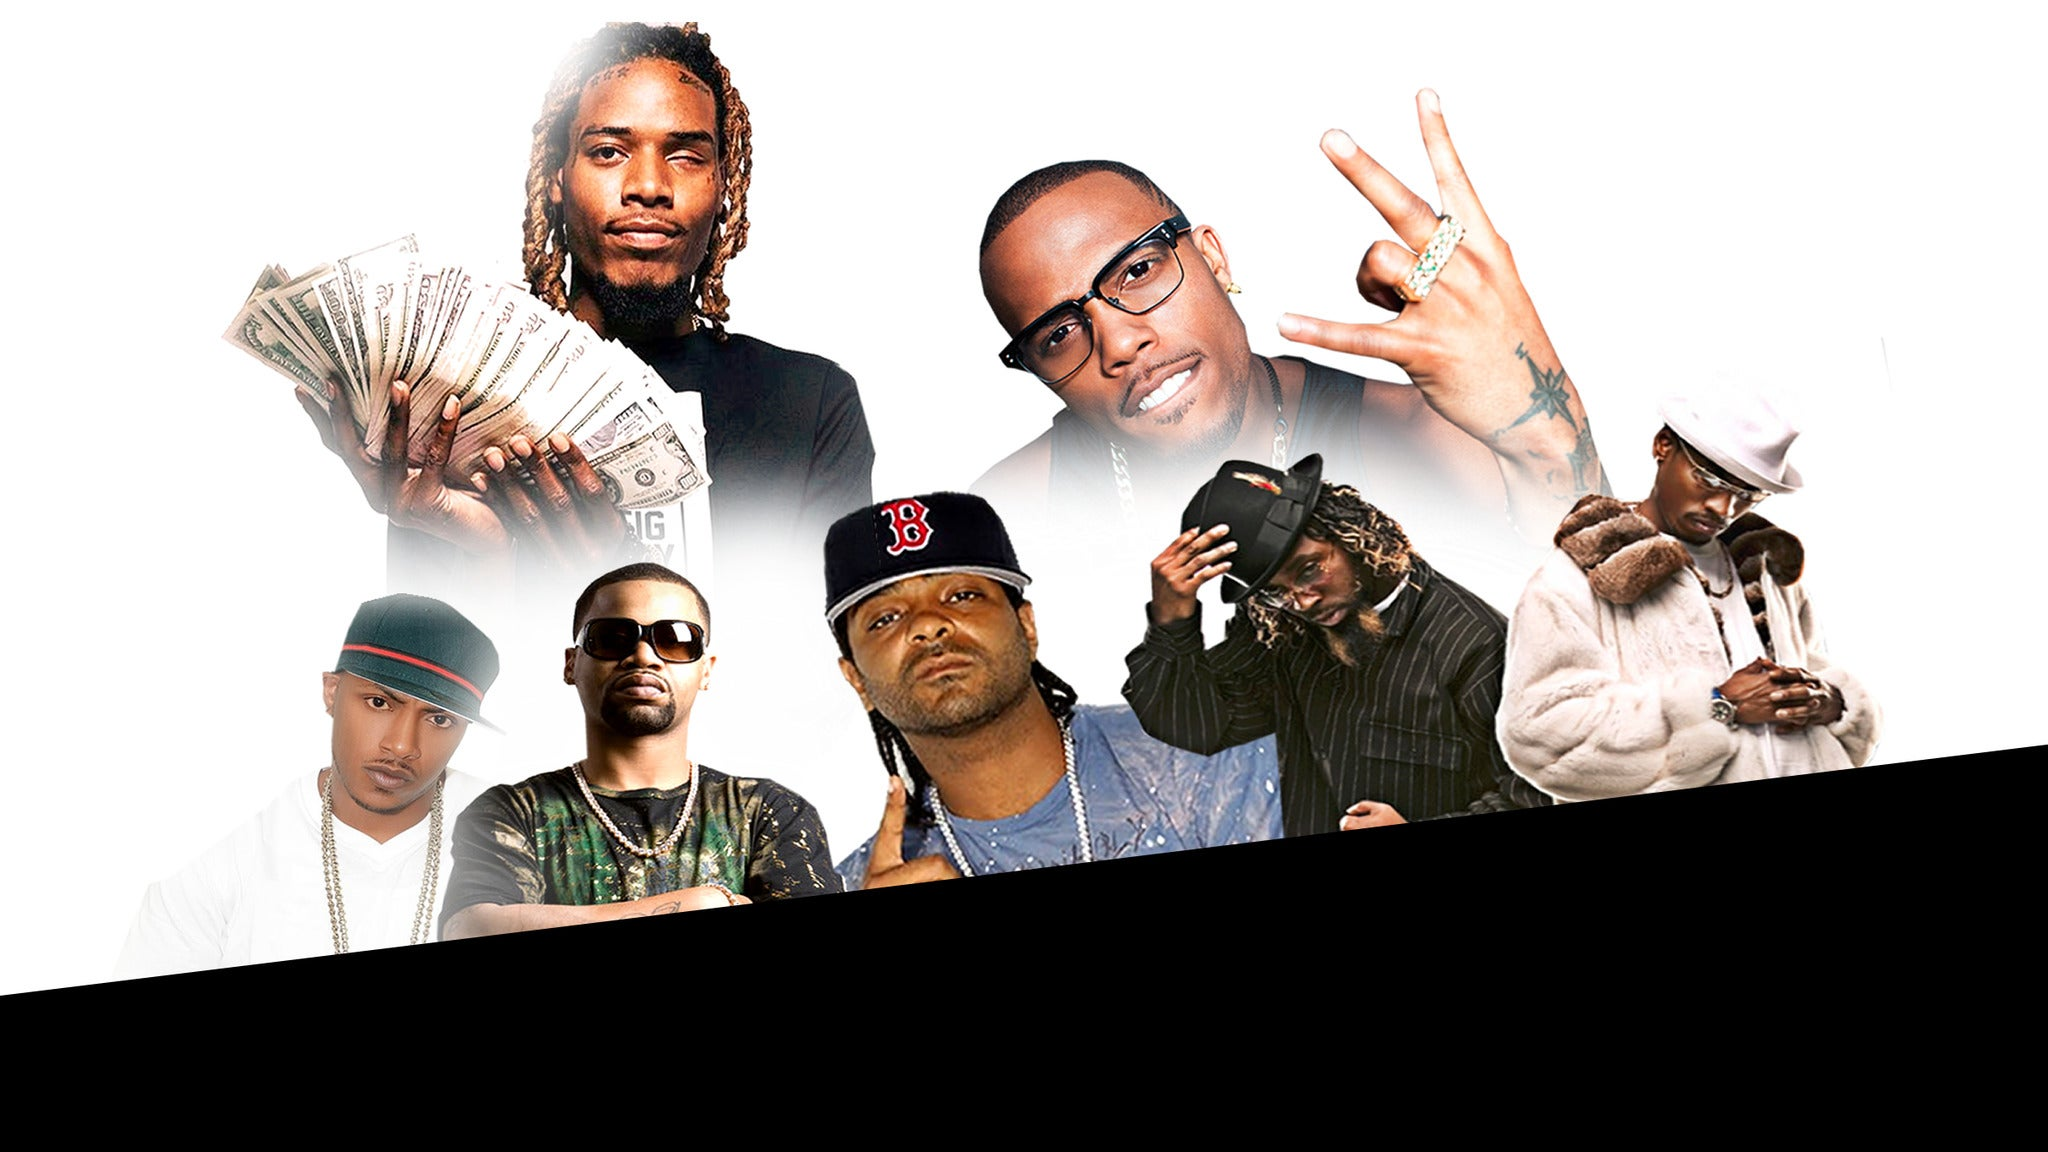 Hip Hop Festival with Fetty Wap & B.o.B.